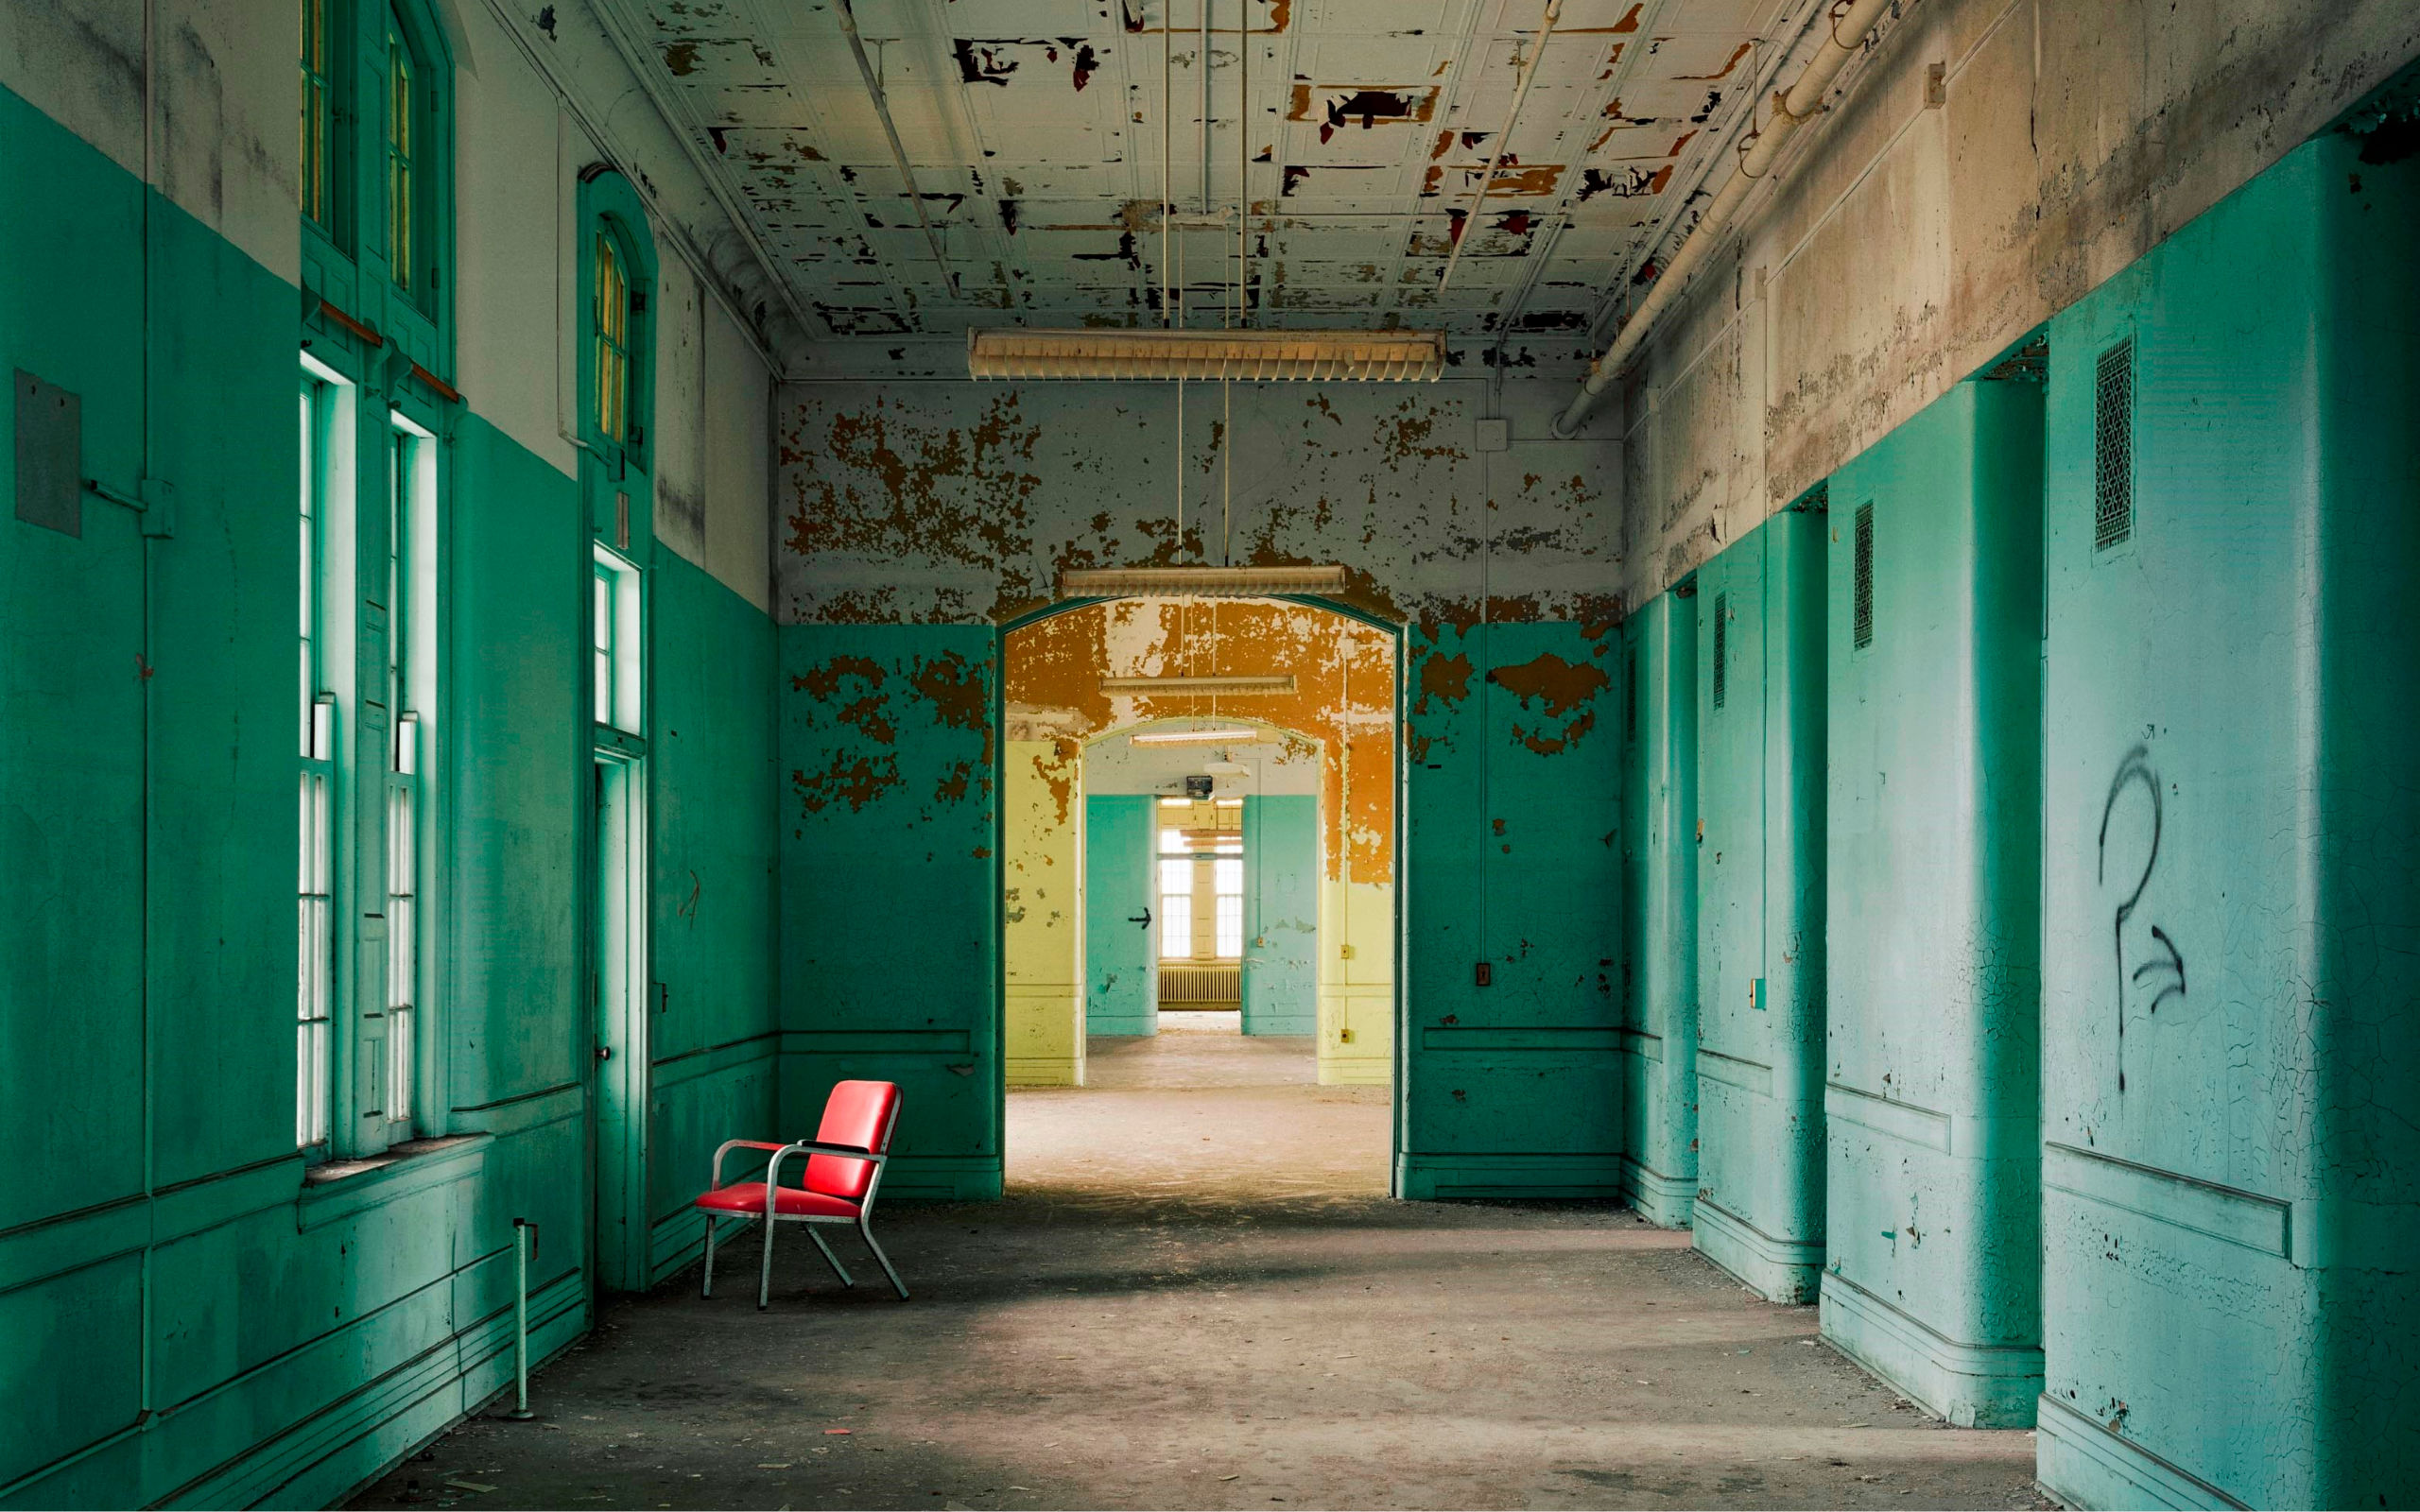 Derelict institutional hallway with peeling green paint and lone red chair in front of window.